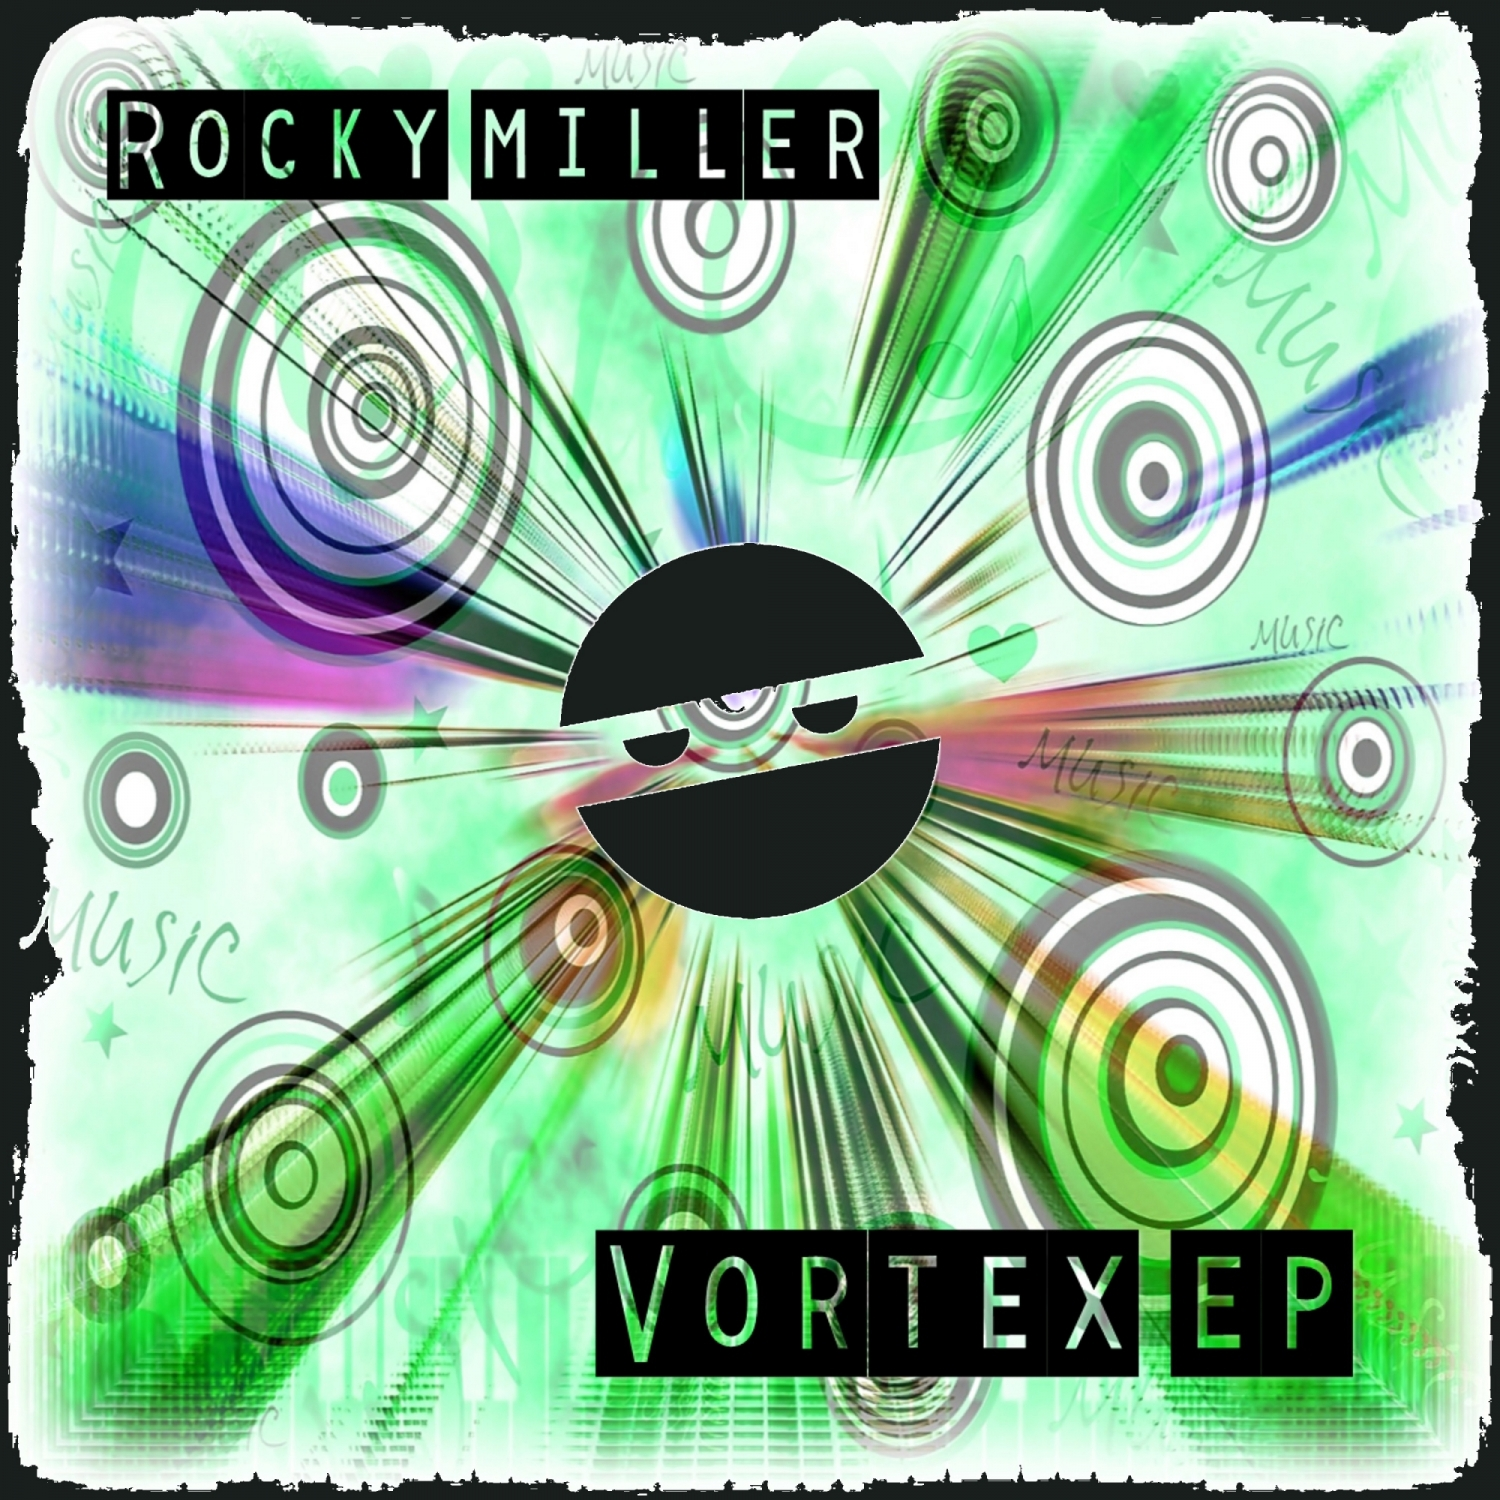 Rocky Miller - Dark Horse (Original Mix)